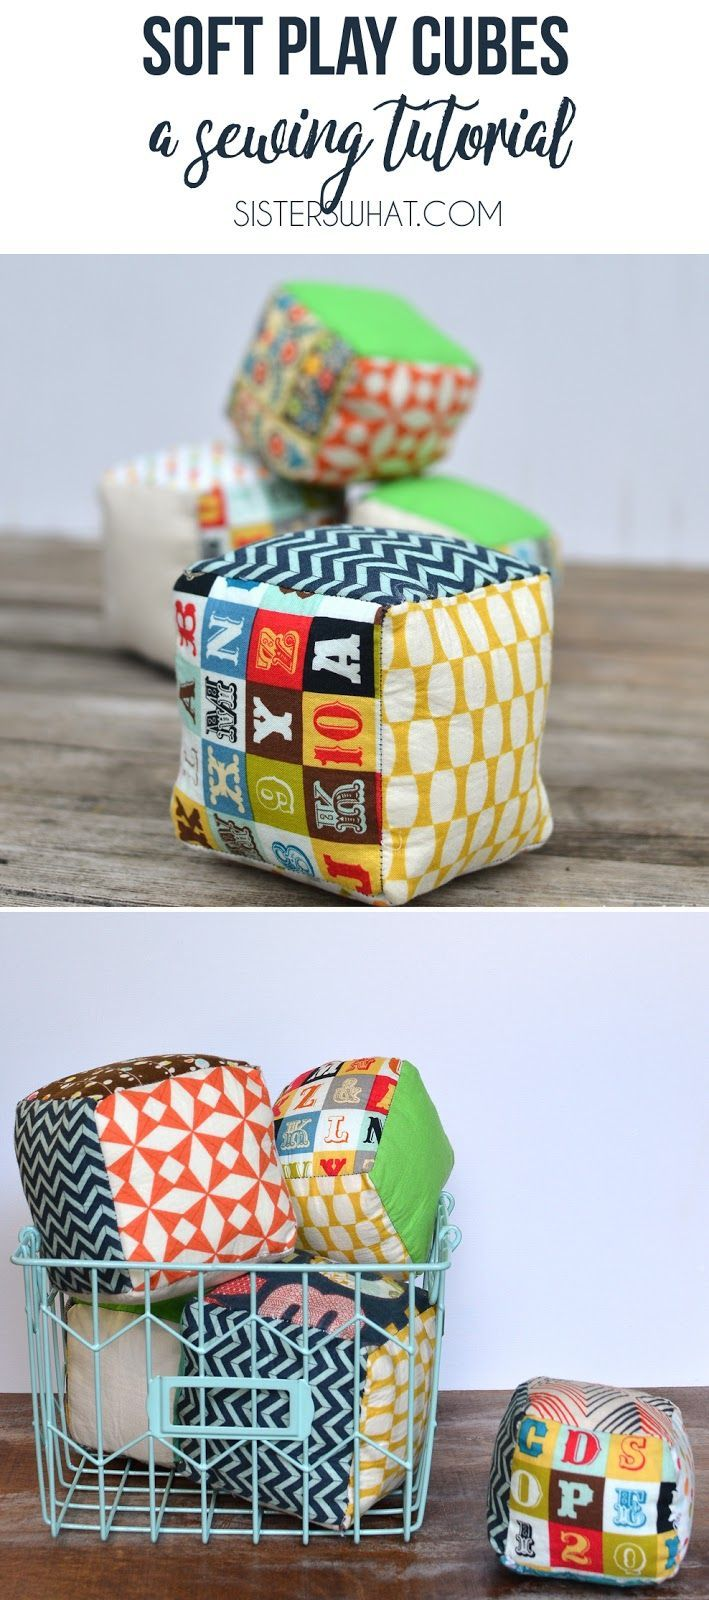 Sewing crafts for children - Soft Play Cubes Tutorial Homemade Toyslittle Childrensewing Toyscraft